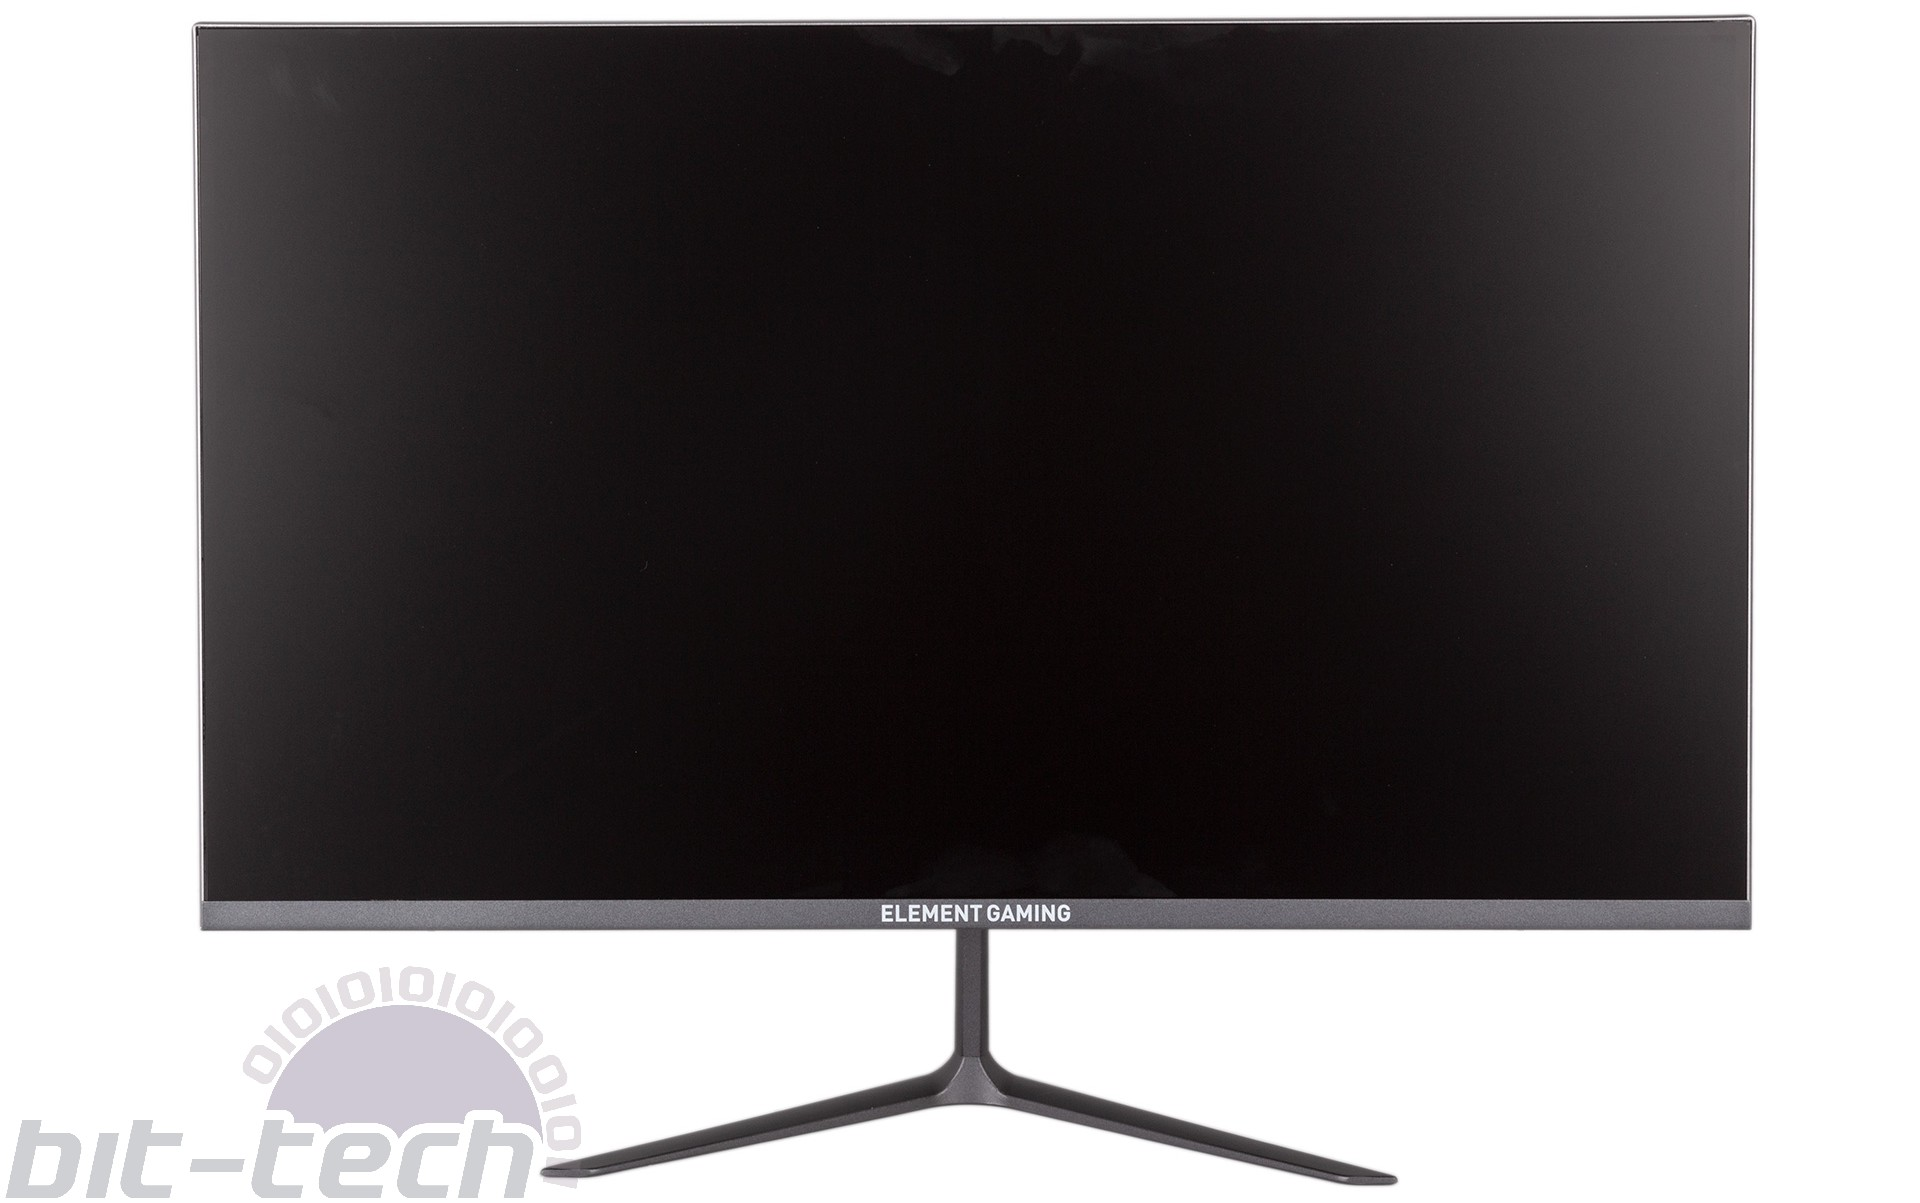 "1440P 144Hz Monitor element gaming 27"" qhd 144hz 1ms gaming monitor review 